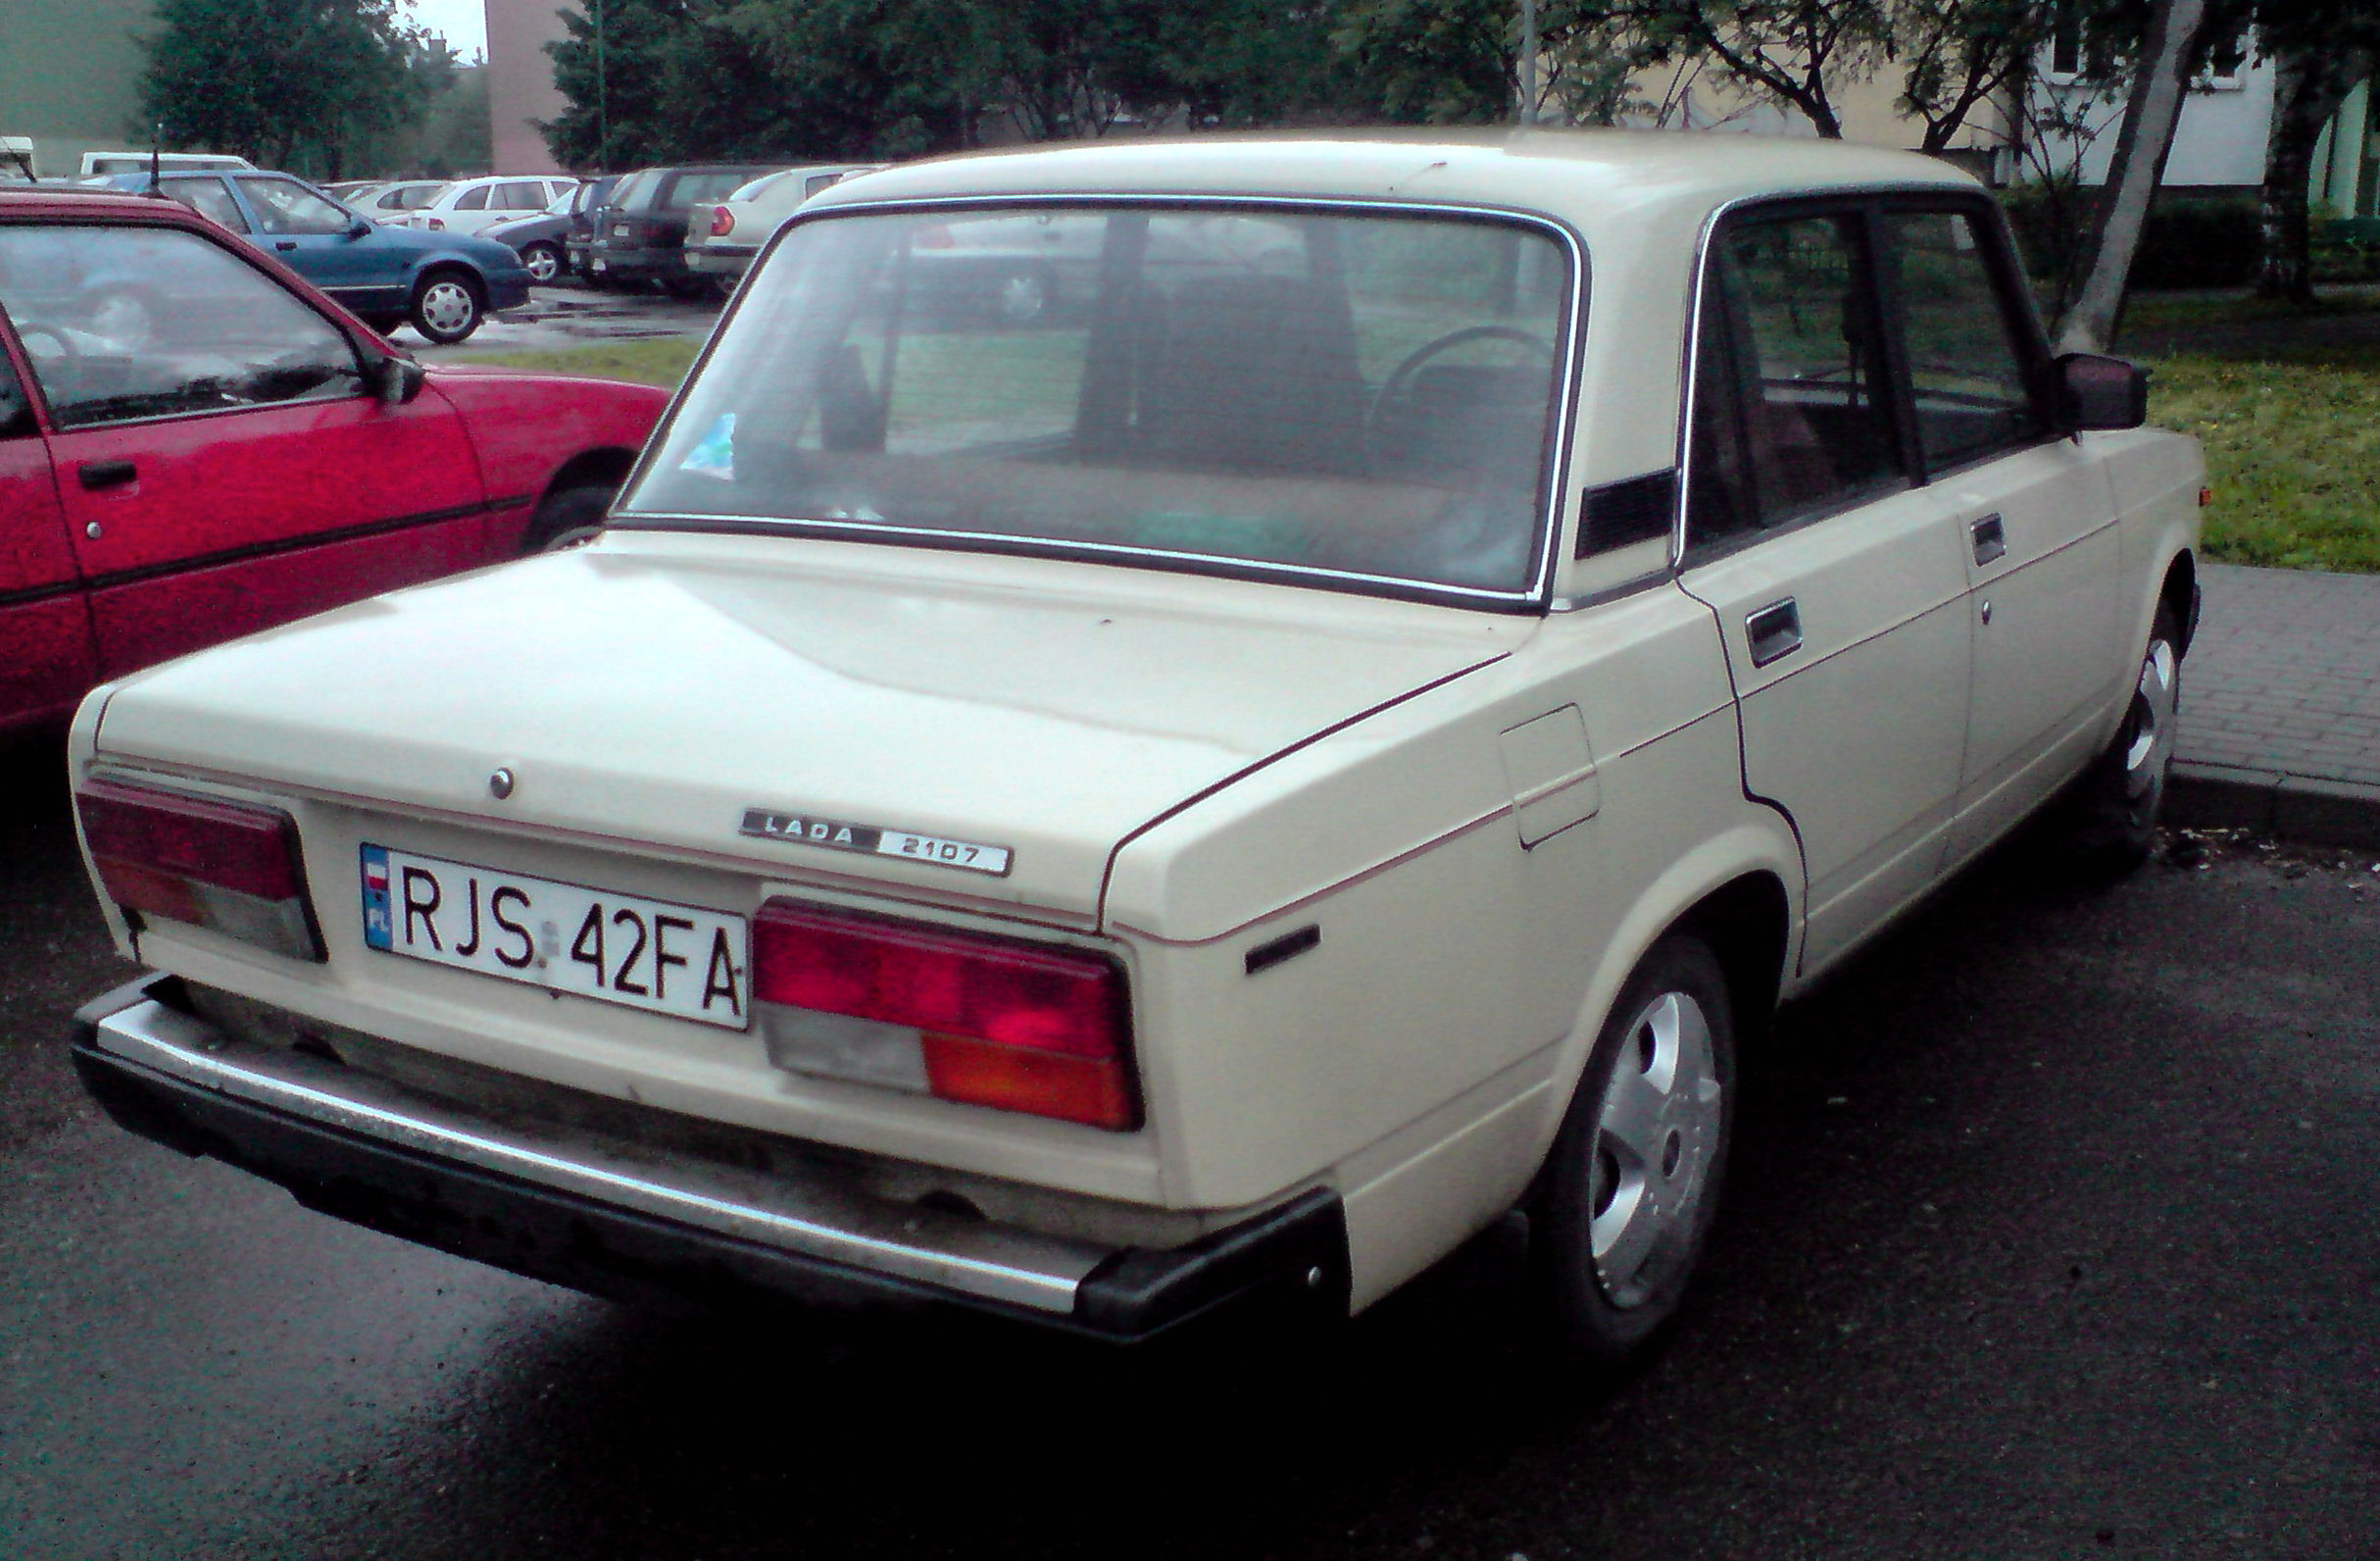 File:Lada 2107 jaslo.jpg - Wikipedia, the free encyclopedia